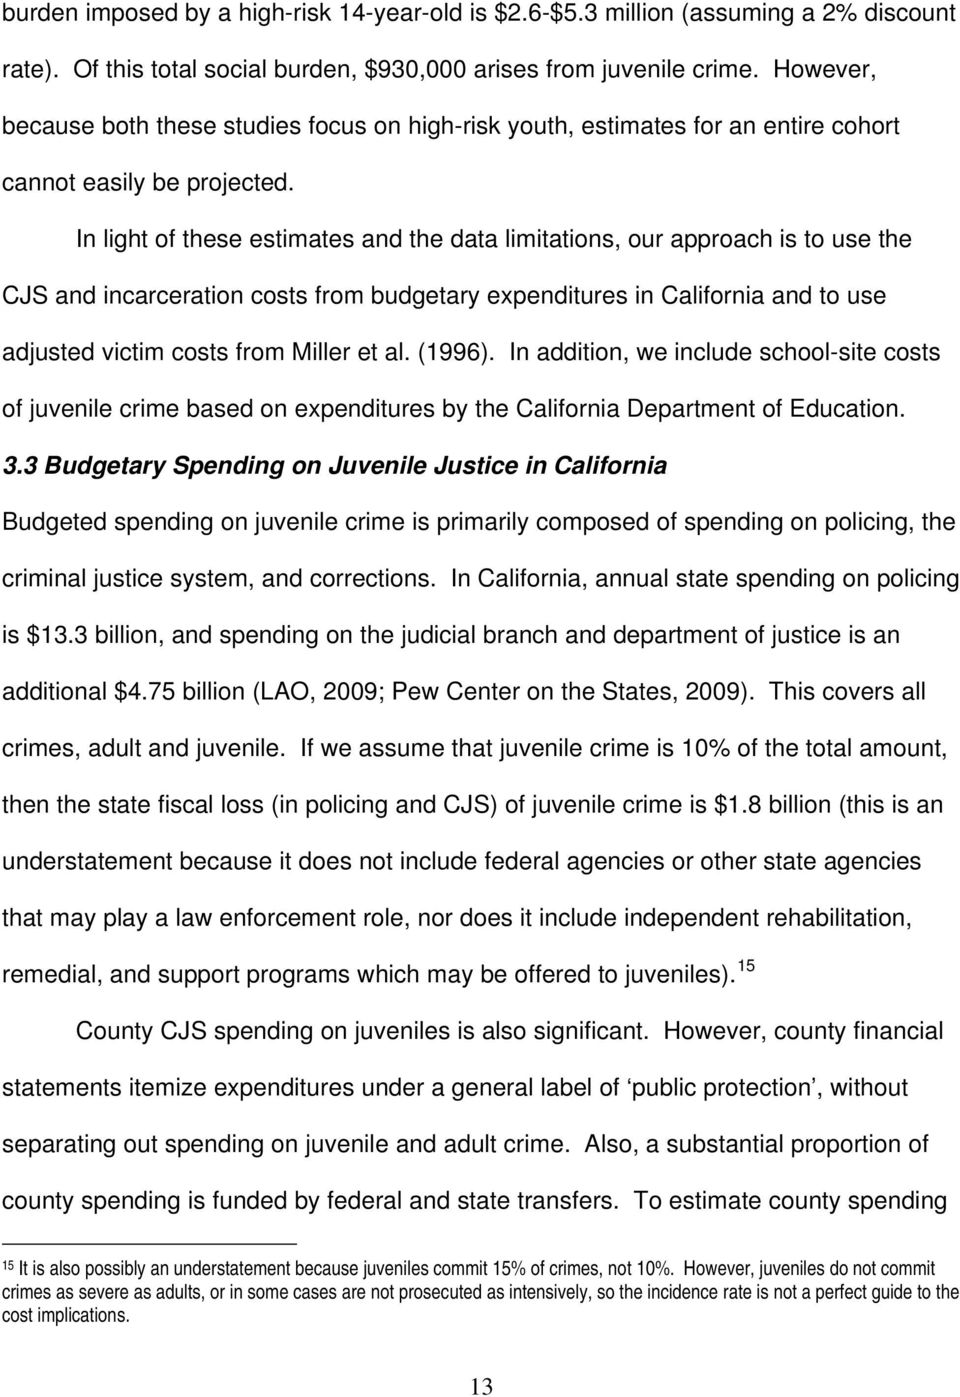 In light of these estimates and the data limitations, our approach is to use the CJS and incarceration costs from budgetary expenditures in California and to use adjusted victim costs from Miller et